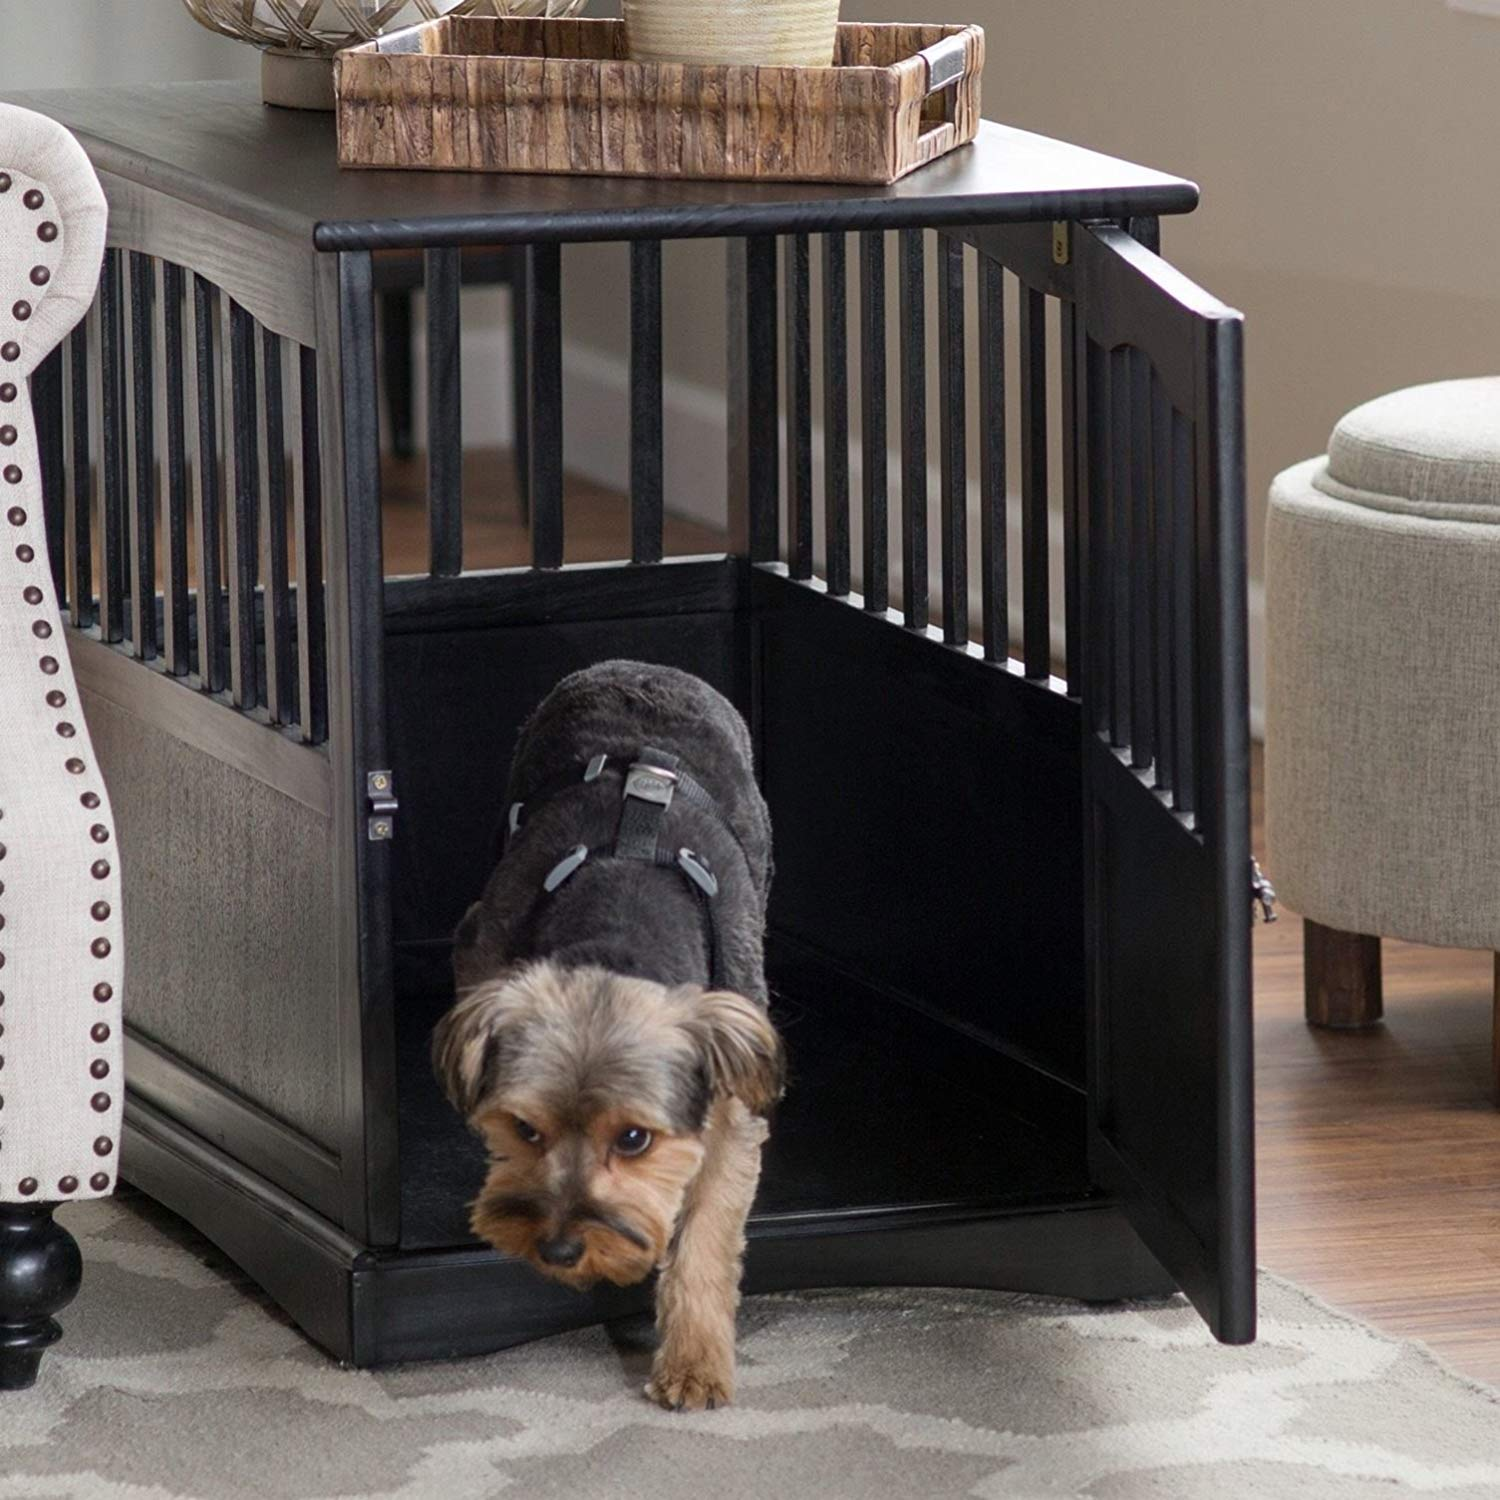 dog crate kennel cage night stand end table wood large furniture cave house room size black pet supplies refinish side barn style coffee sofa decorating ideas navy bedside simple